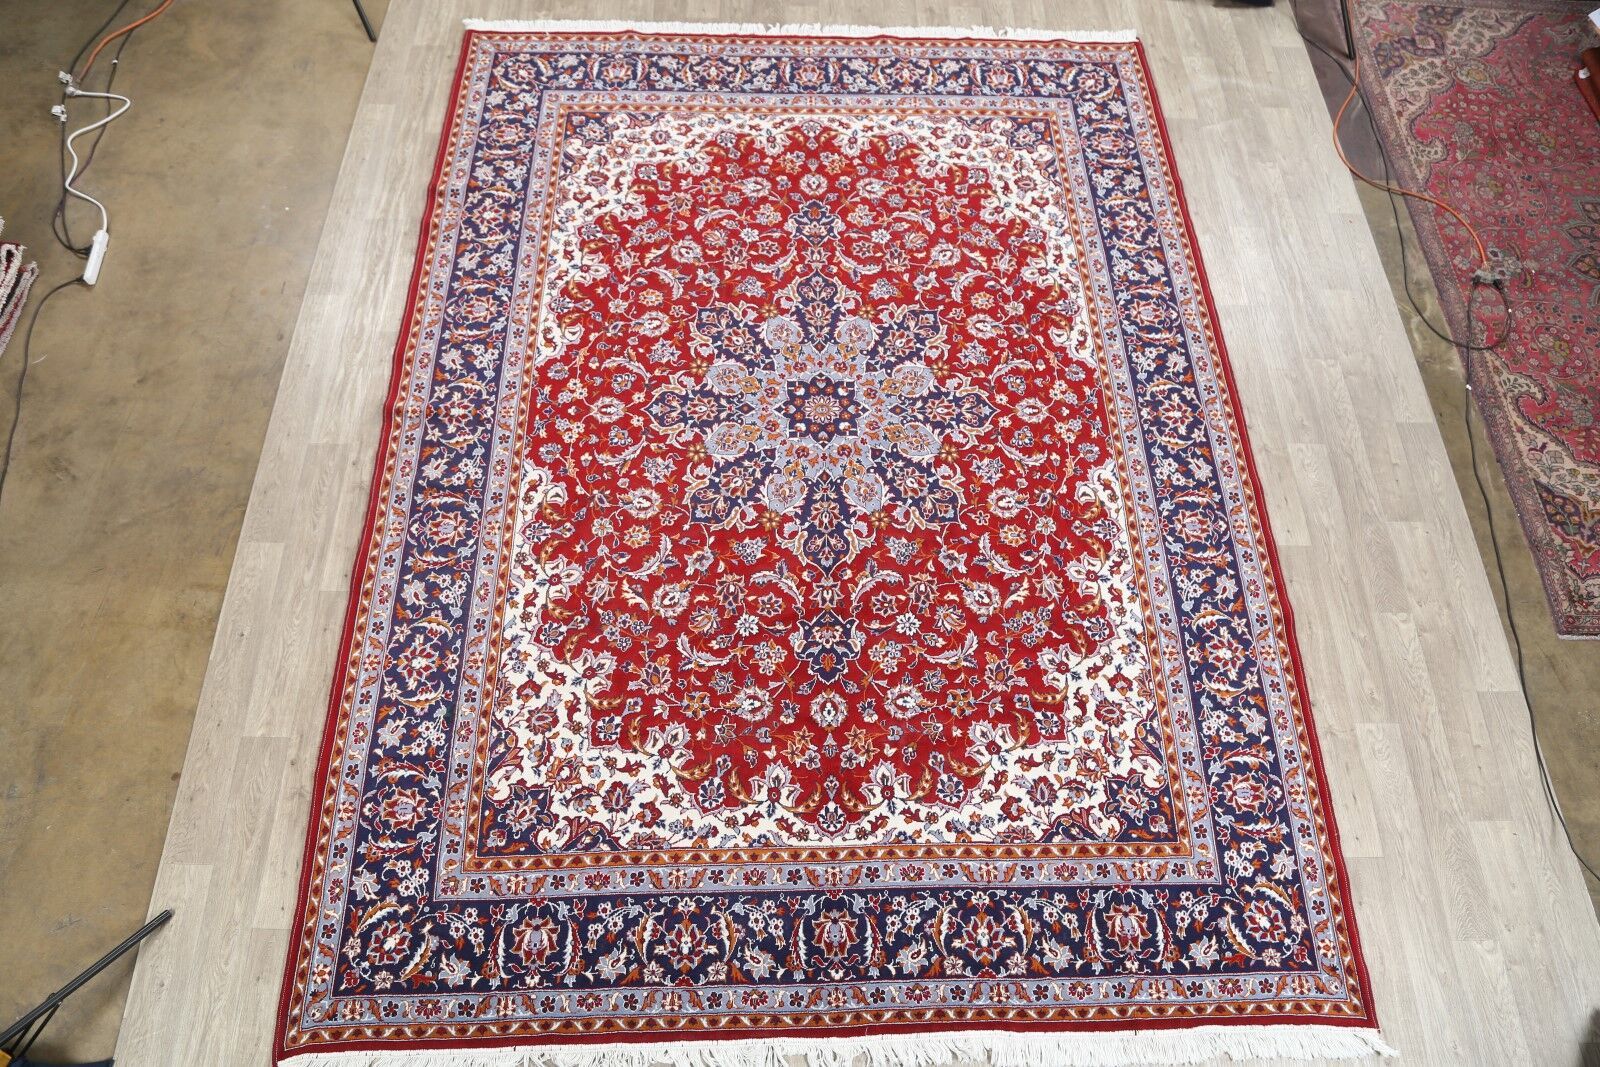 Soft Plush Najafabad Persian Red/Blue/Beige Area Rug